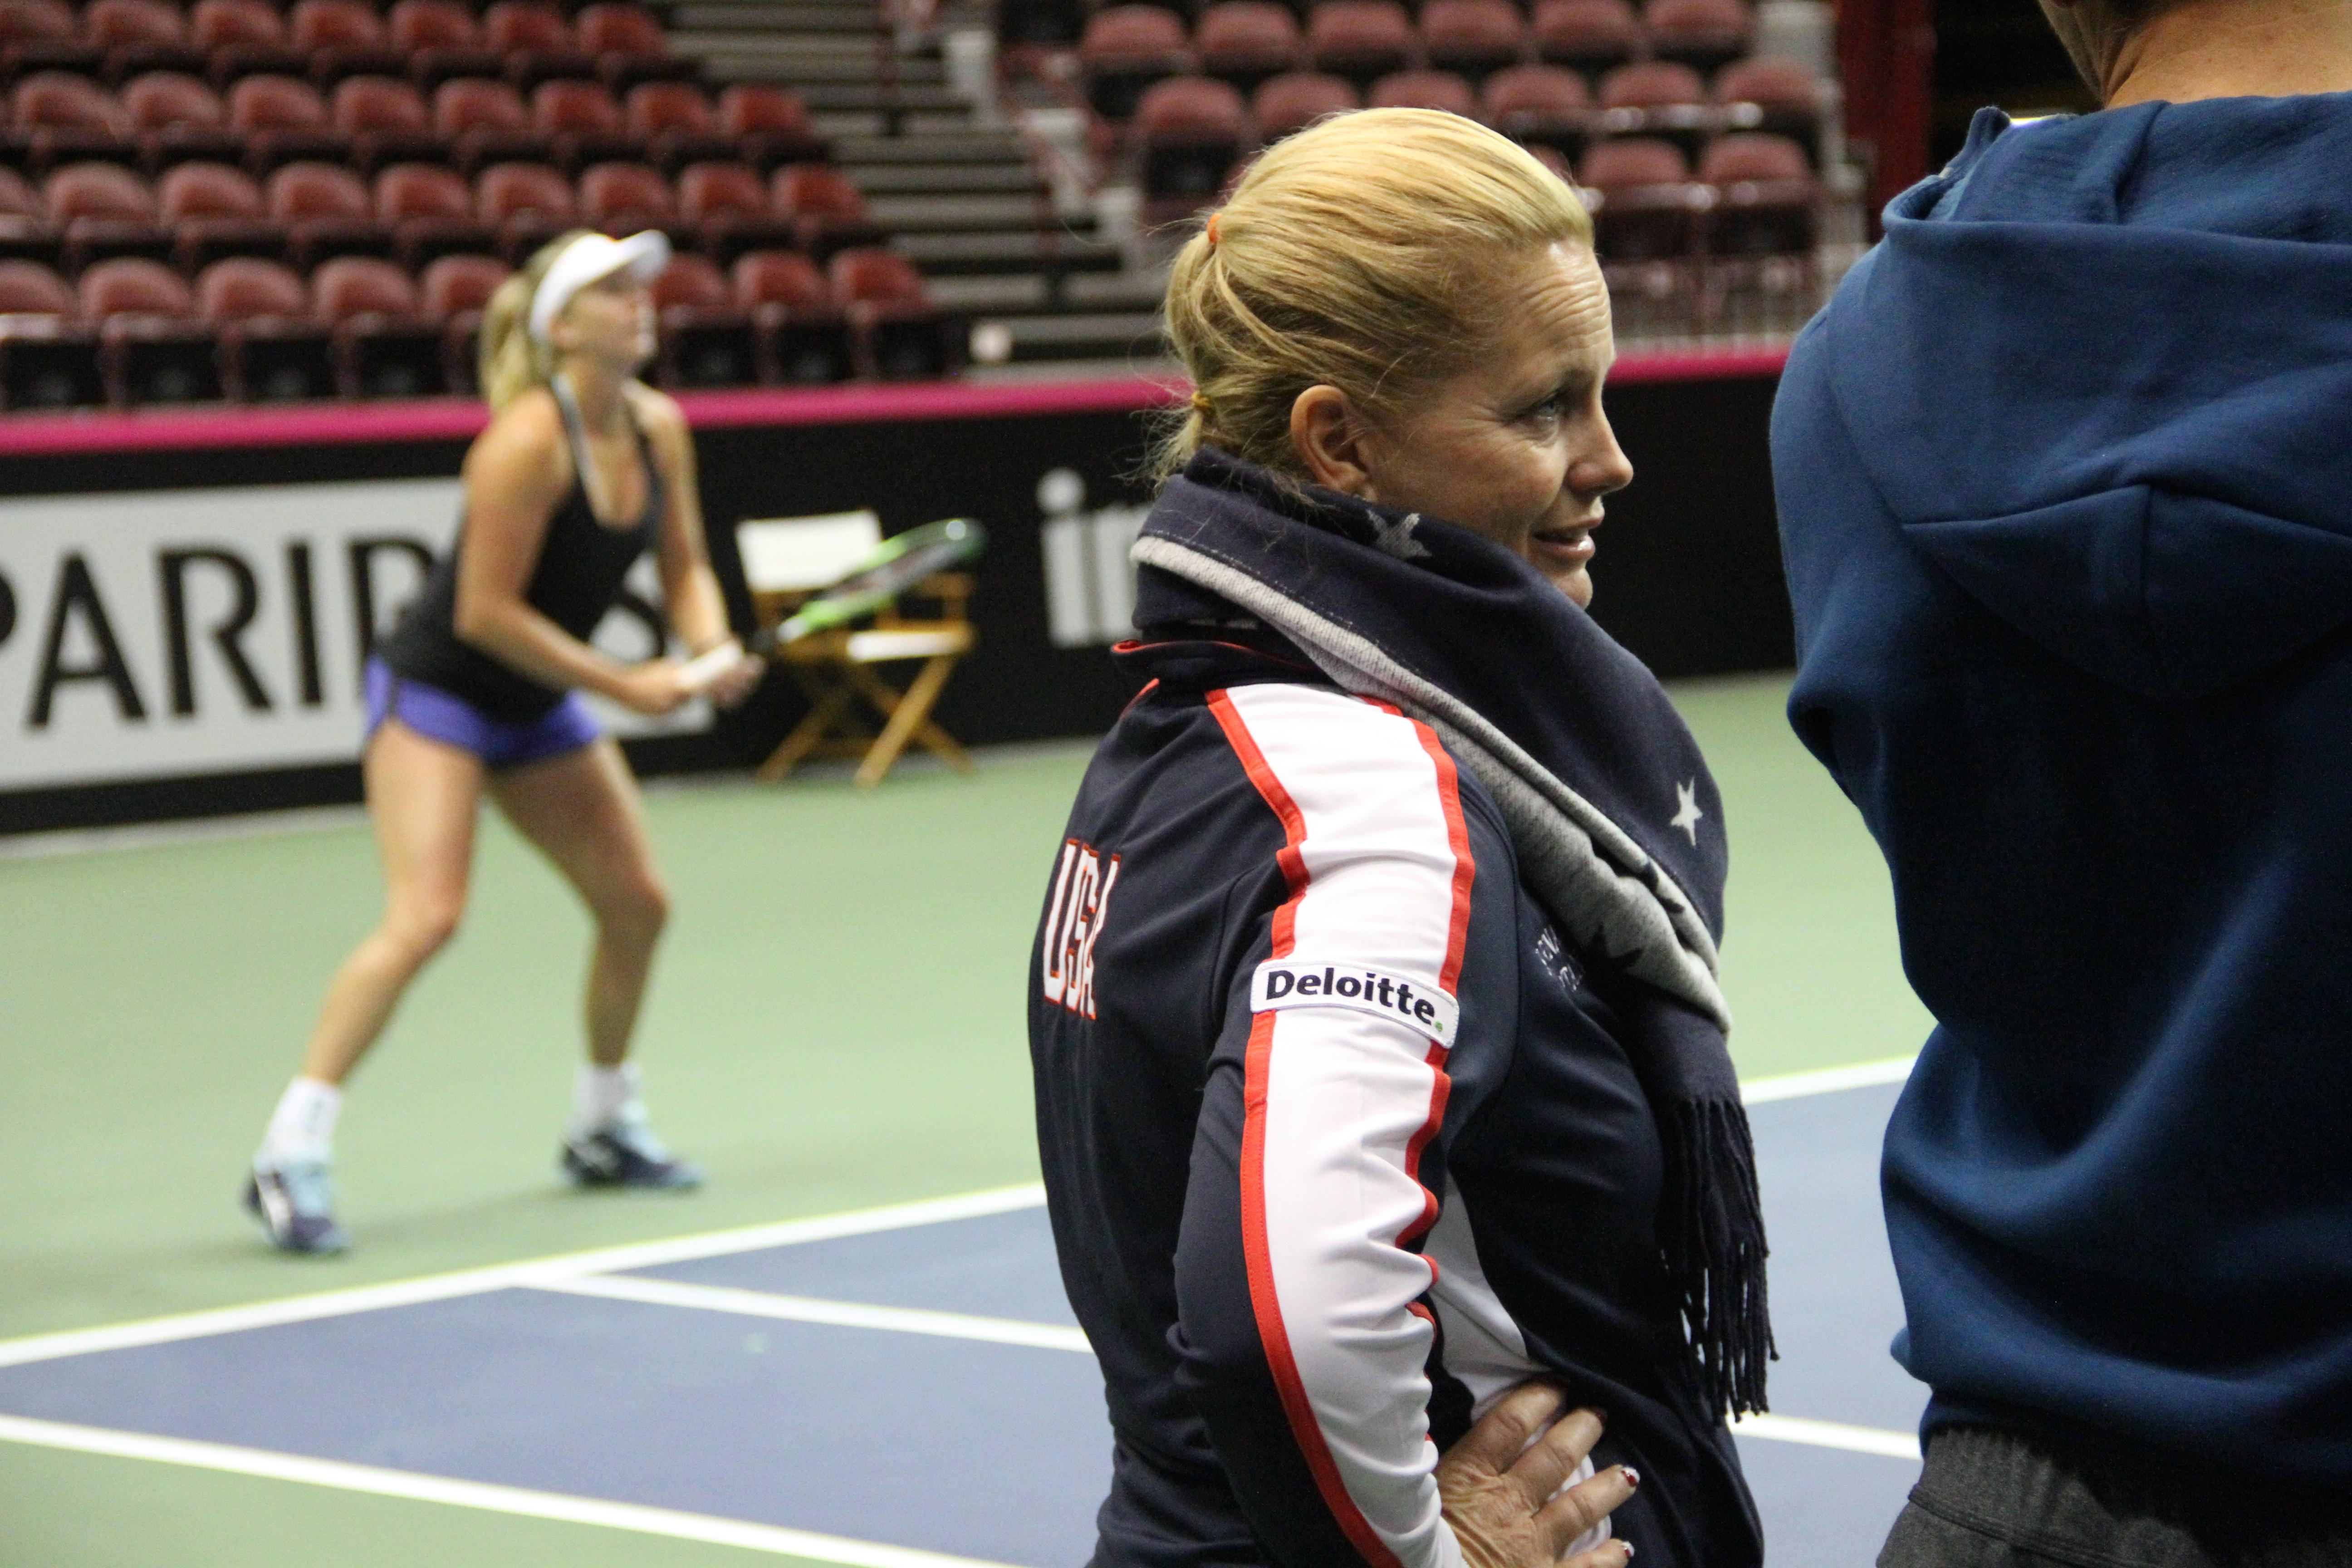 CoCo Vandeweghe practices at the US Cellular Center on Feb. 7, 2018, as Captain Kathy Rinaldi looks on. (Photo credit: WLOS Staff)<p></p>